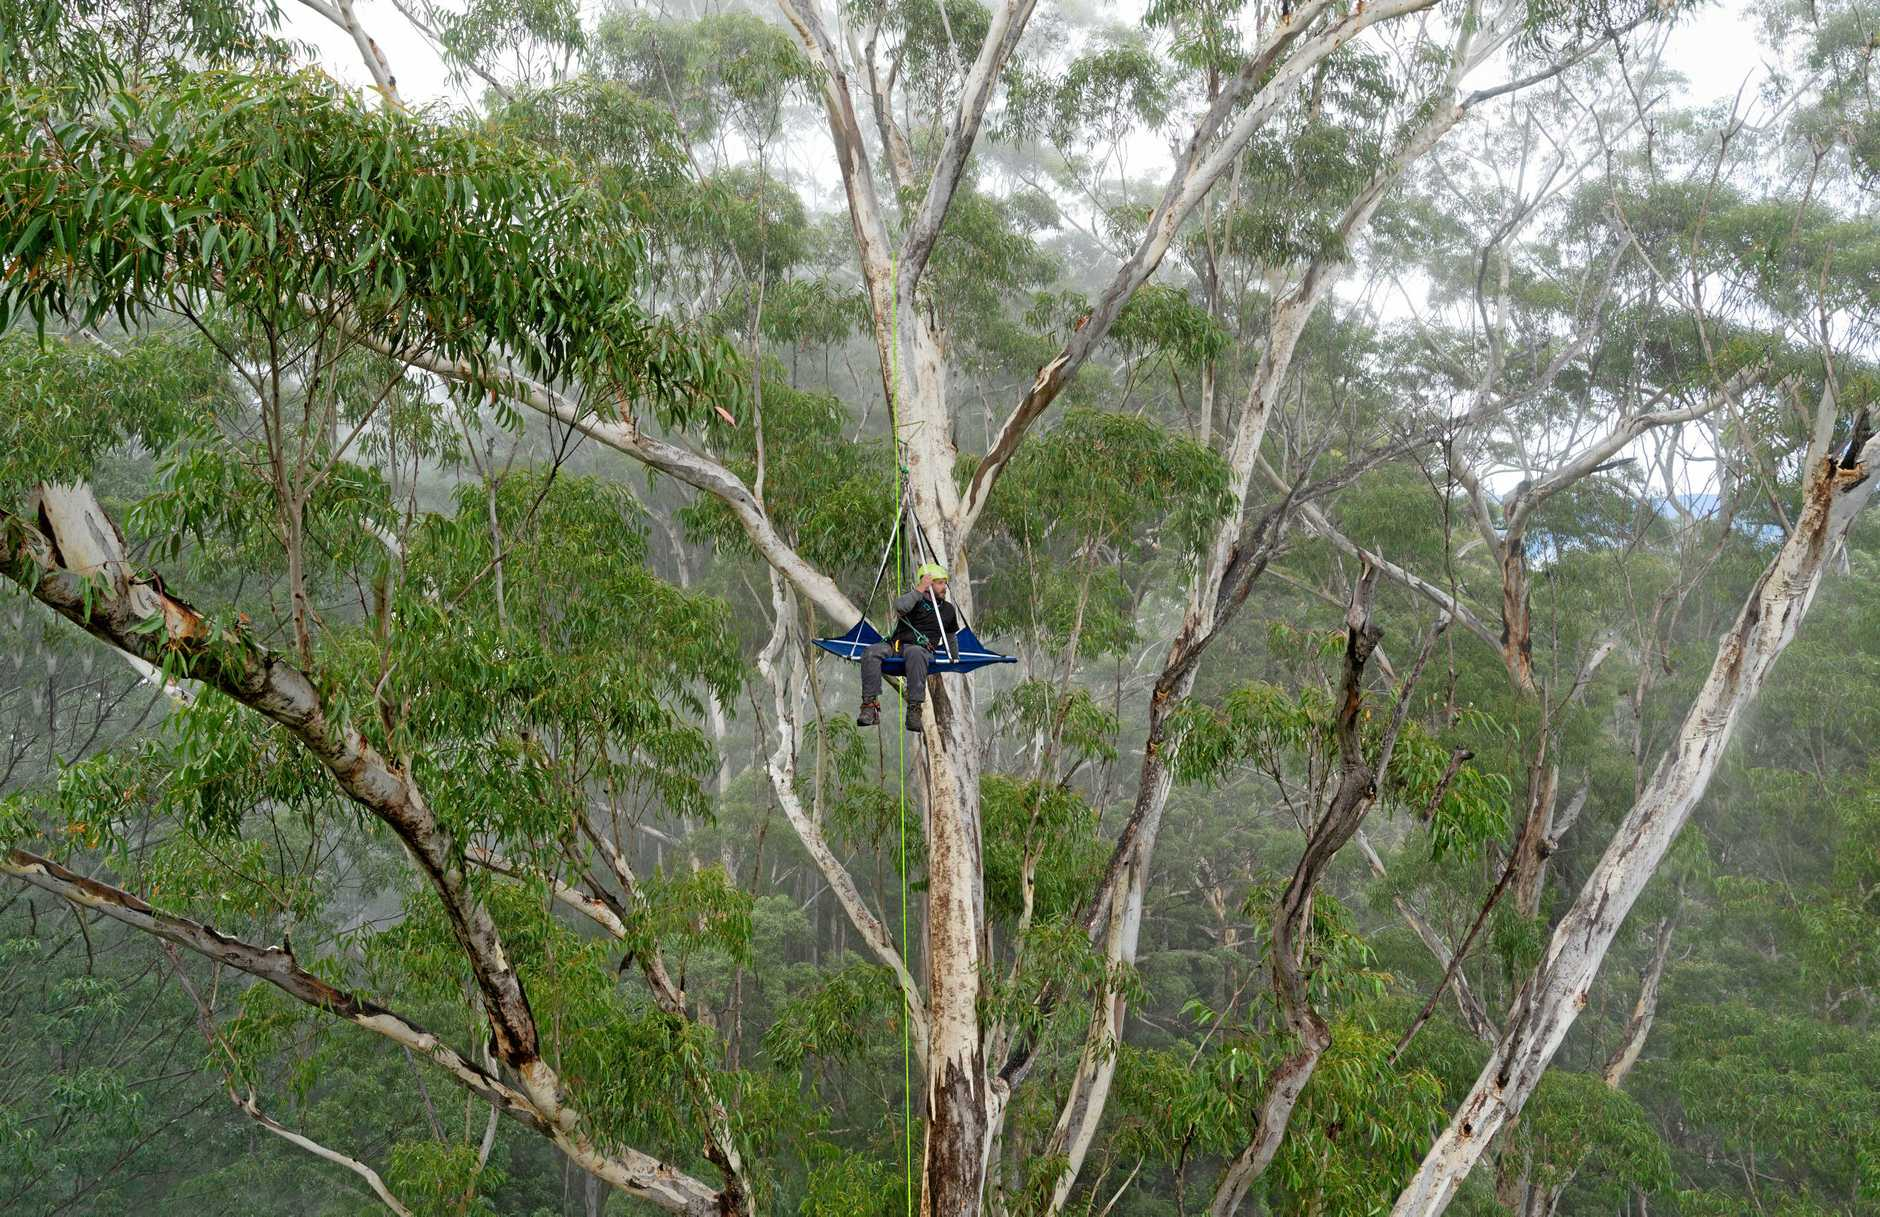 A renowned Tasmanian photographer has spent several painstaking days climbing great heights to capture the perfect image of a 250-year-old tree located near Bellingen, which is set to be logged under new laws.